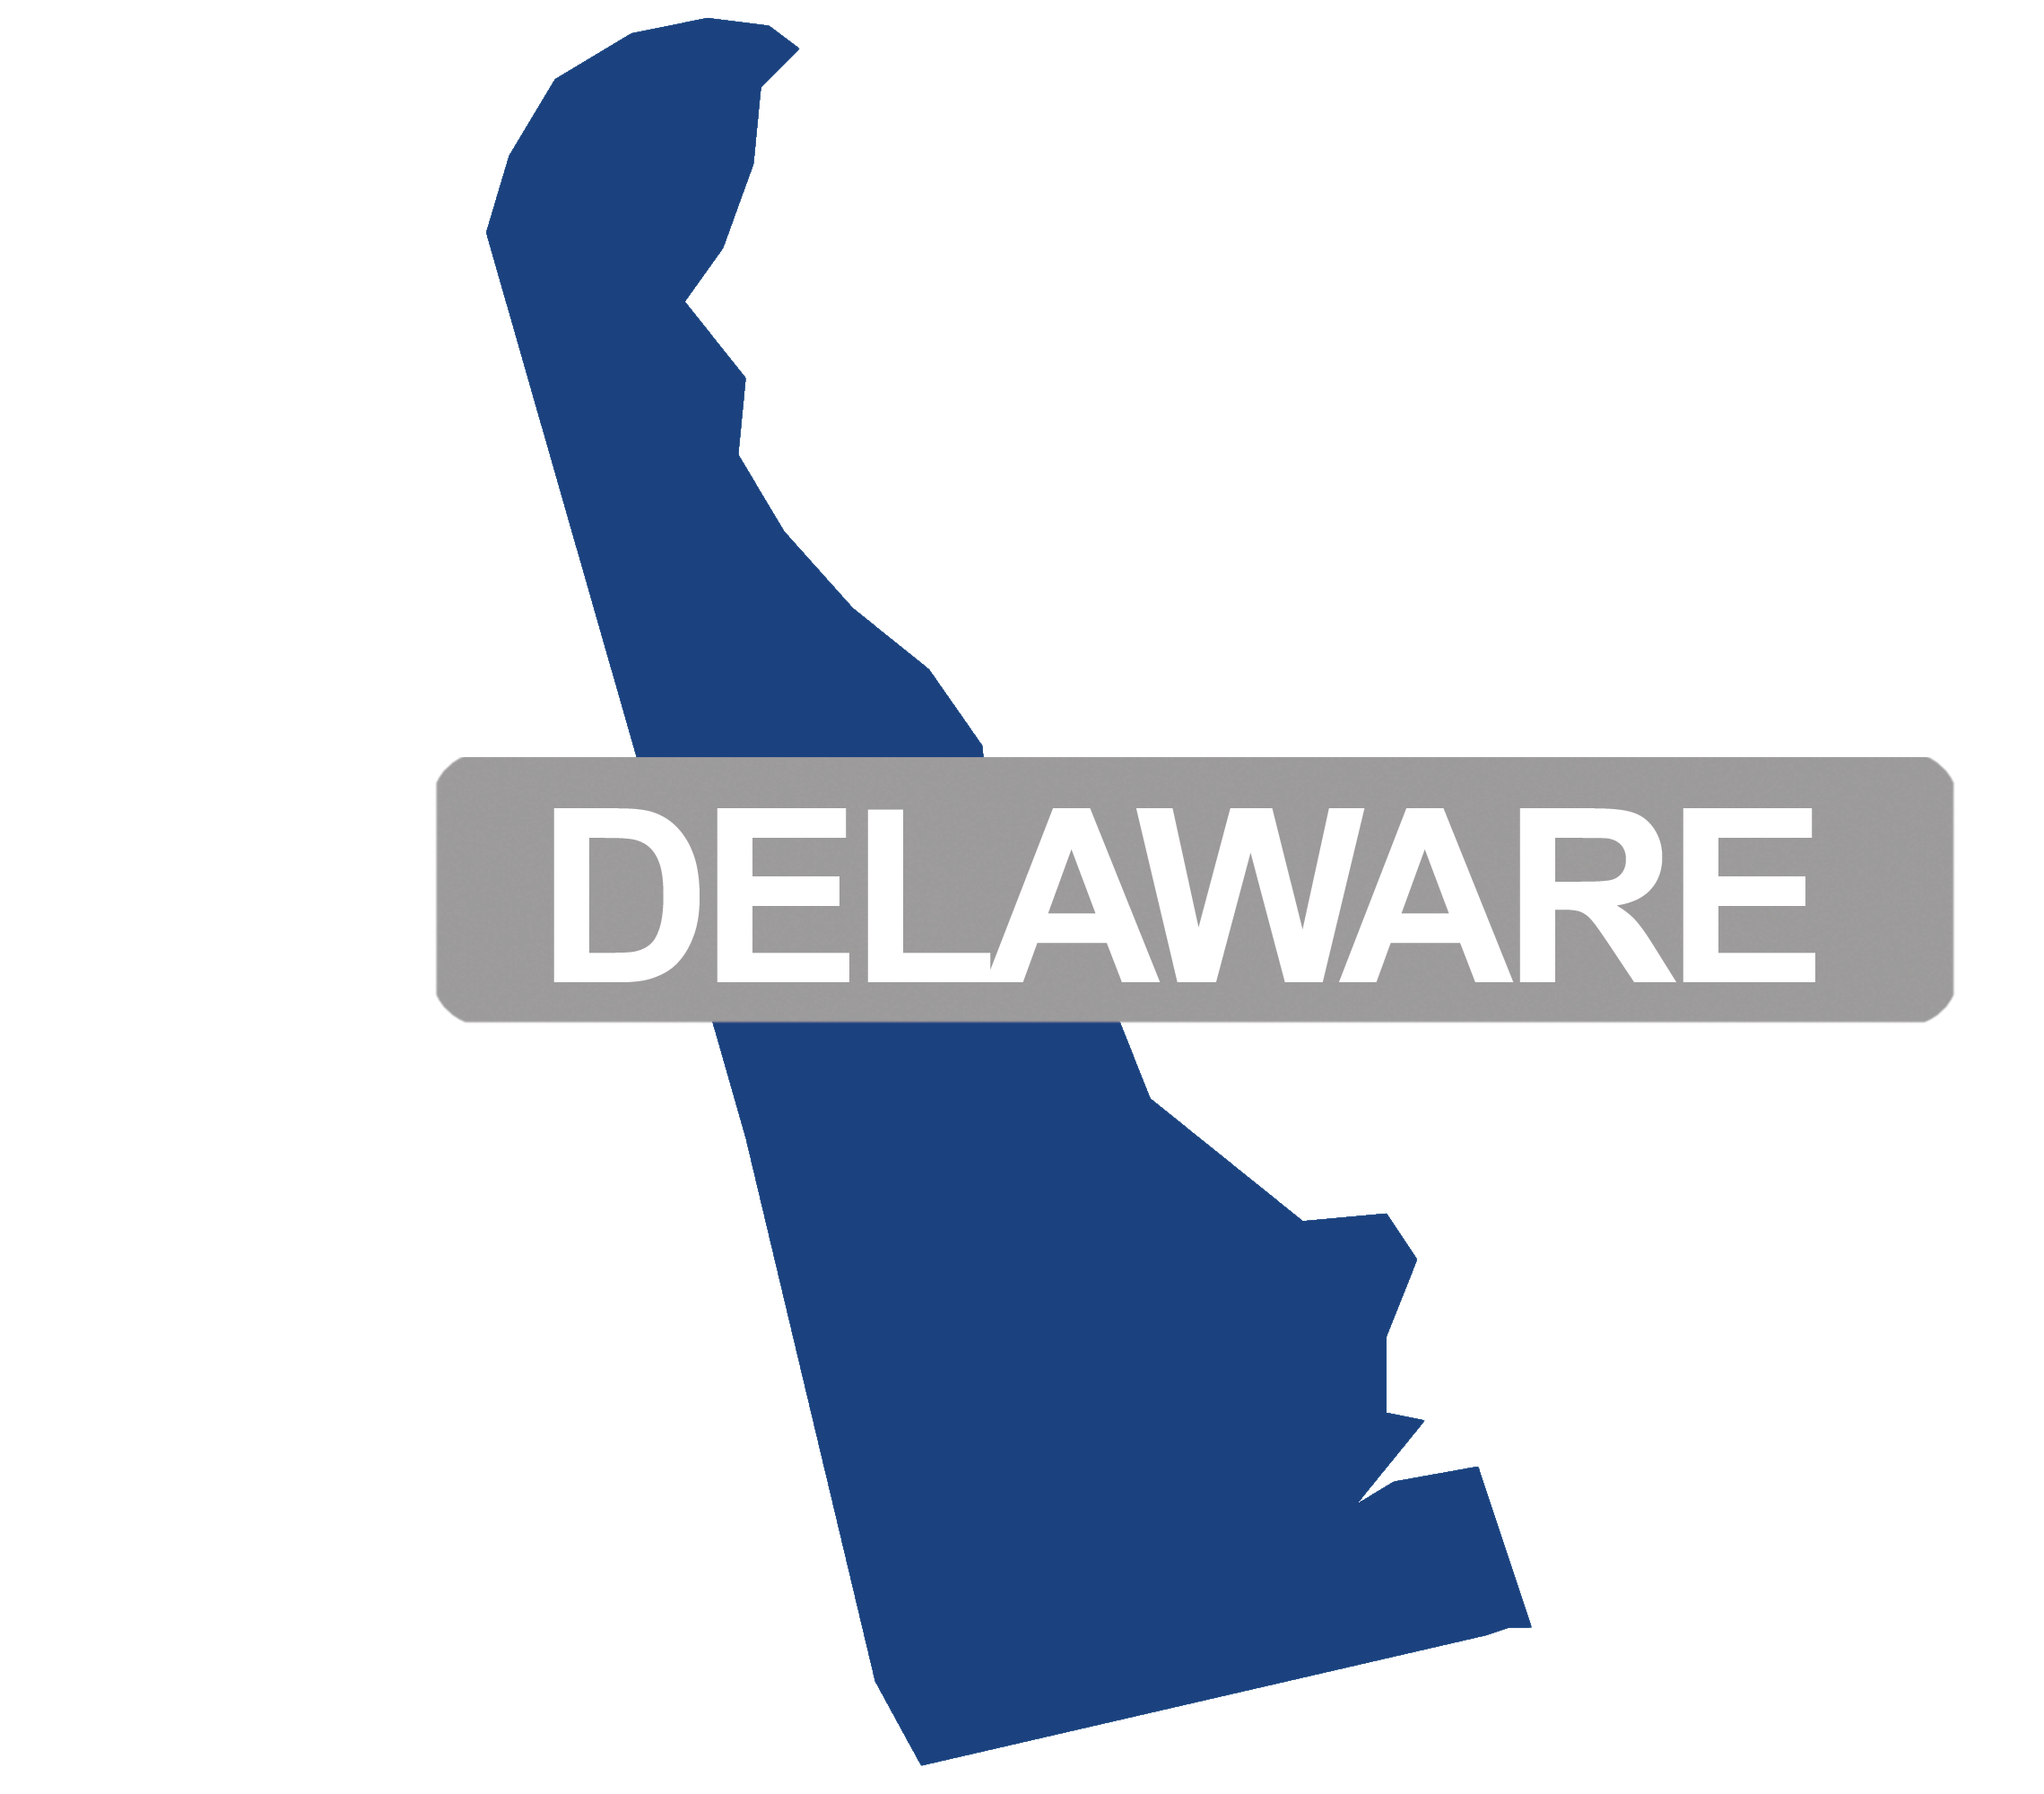 Delaware    Delaware Dept of Mental Health: 800-652-2929    Child Priority Response Hotline: 1-800-969- 4357    Christiana Care: 302-320-2118